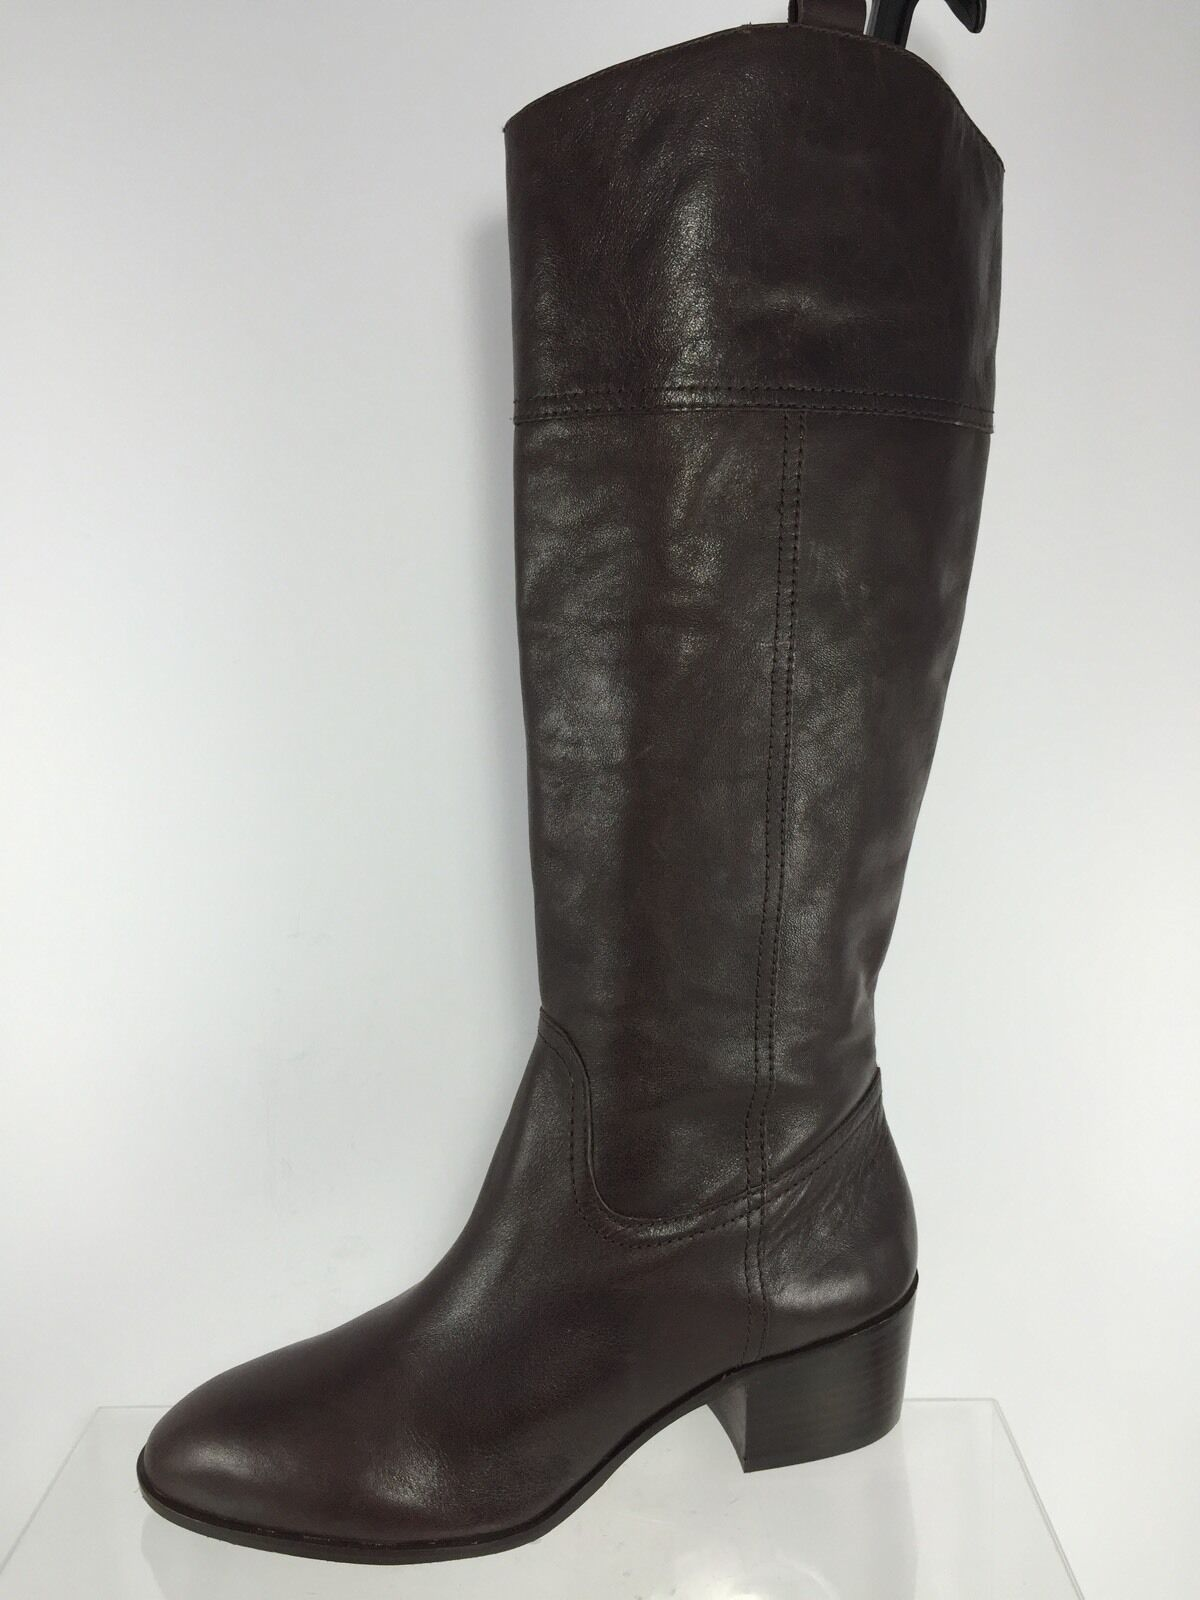 Louise et Cie Womens Dark Brown Leather 8.5 M